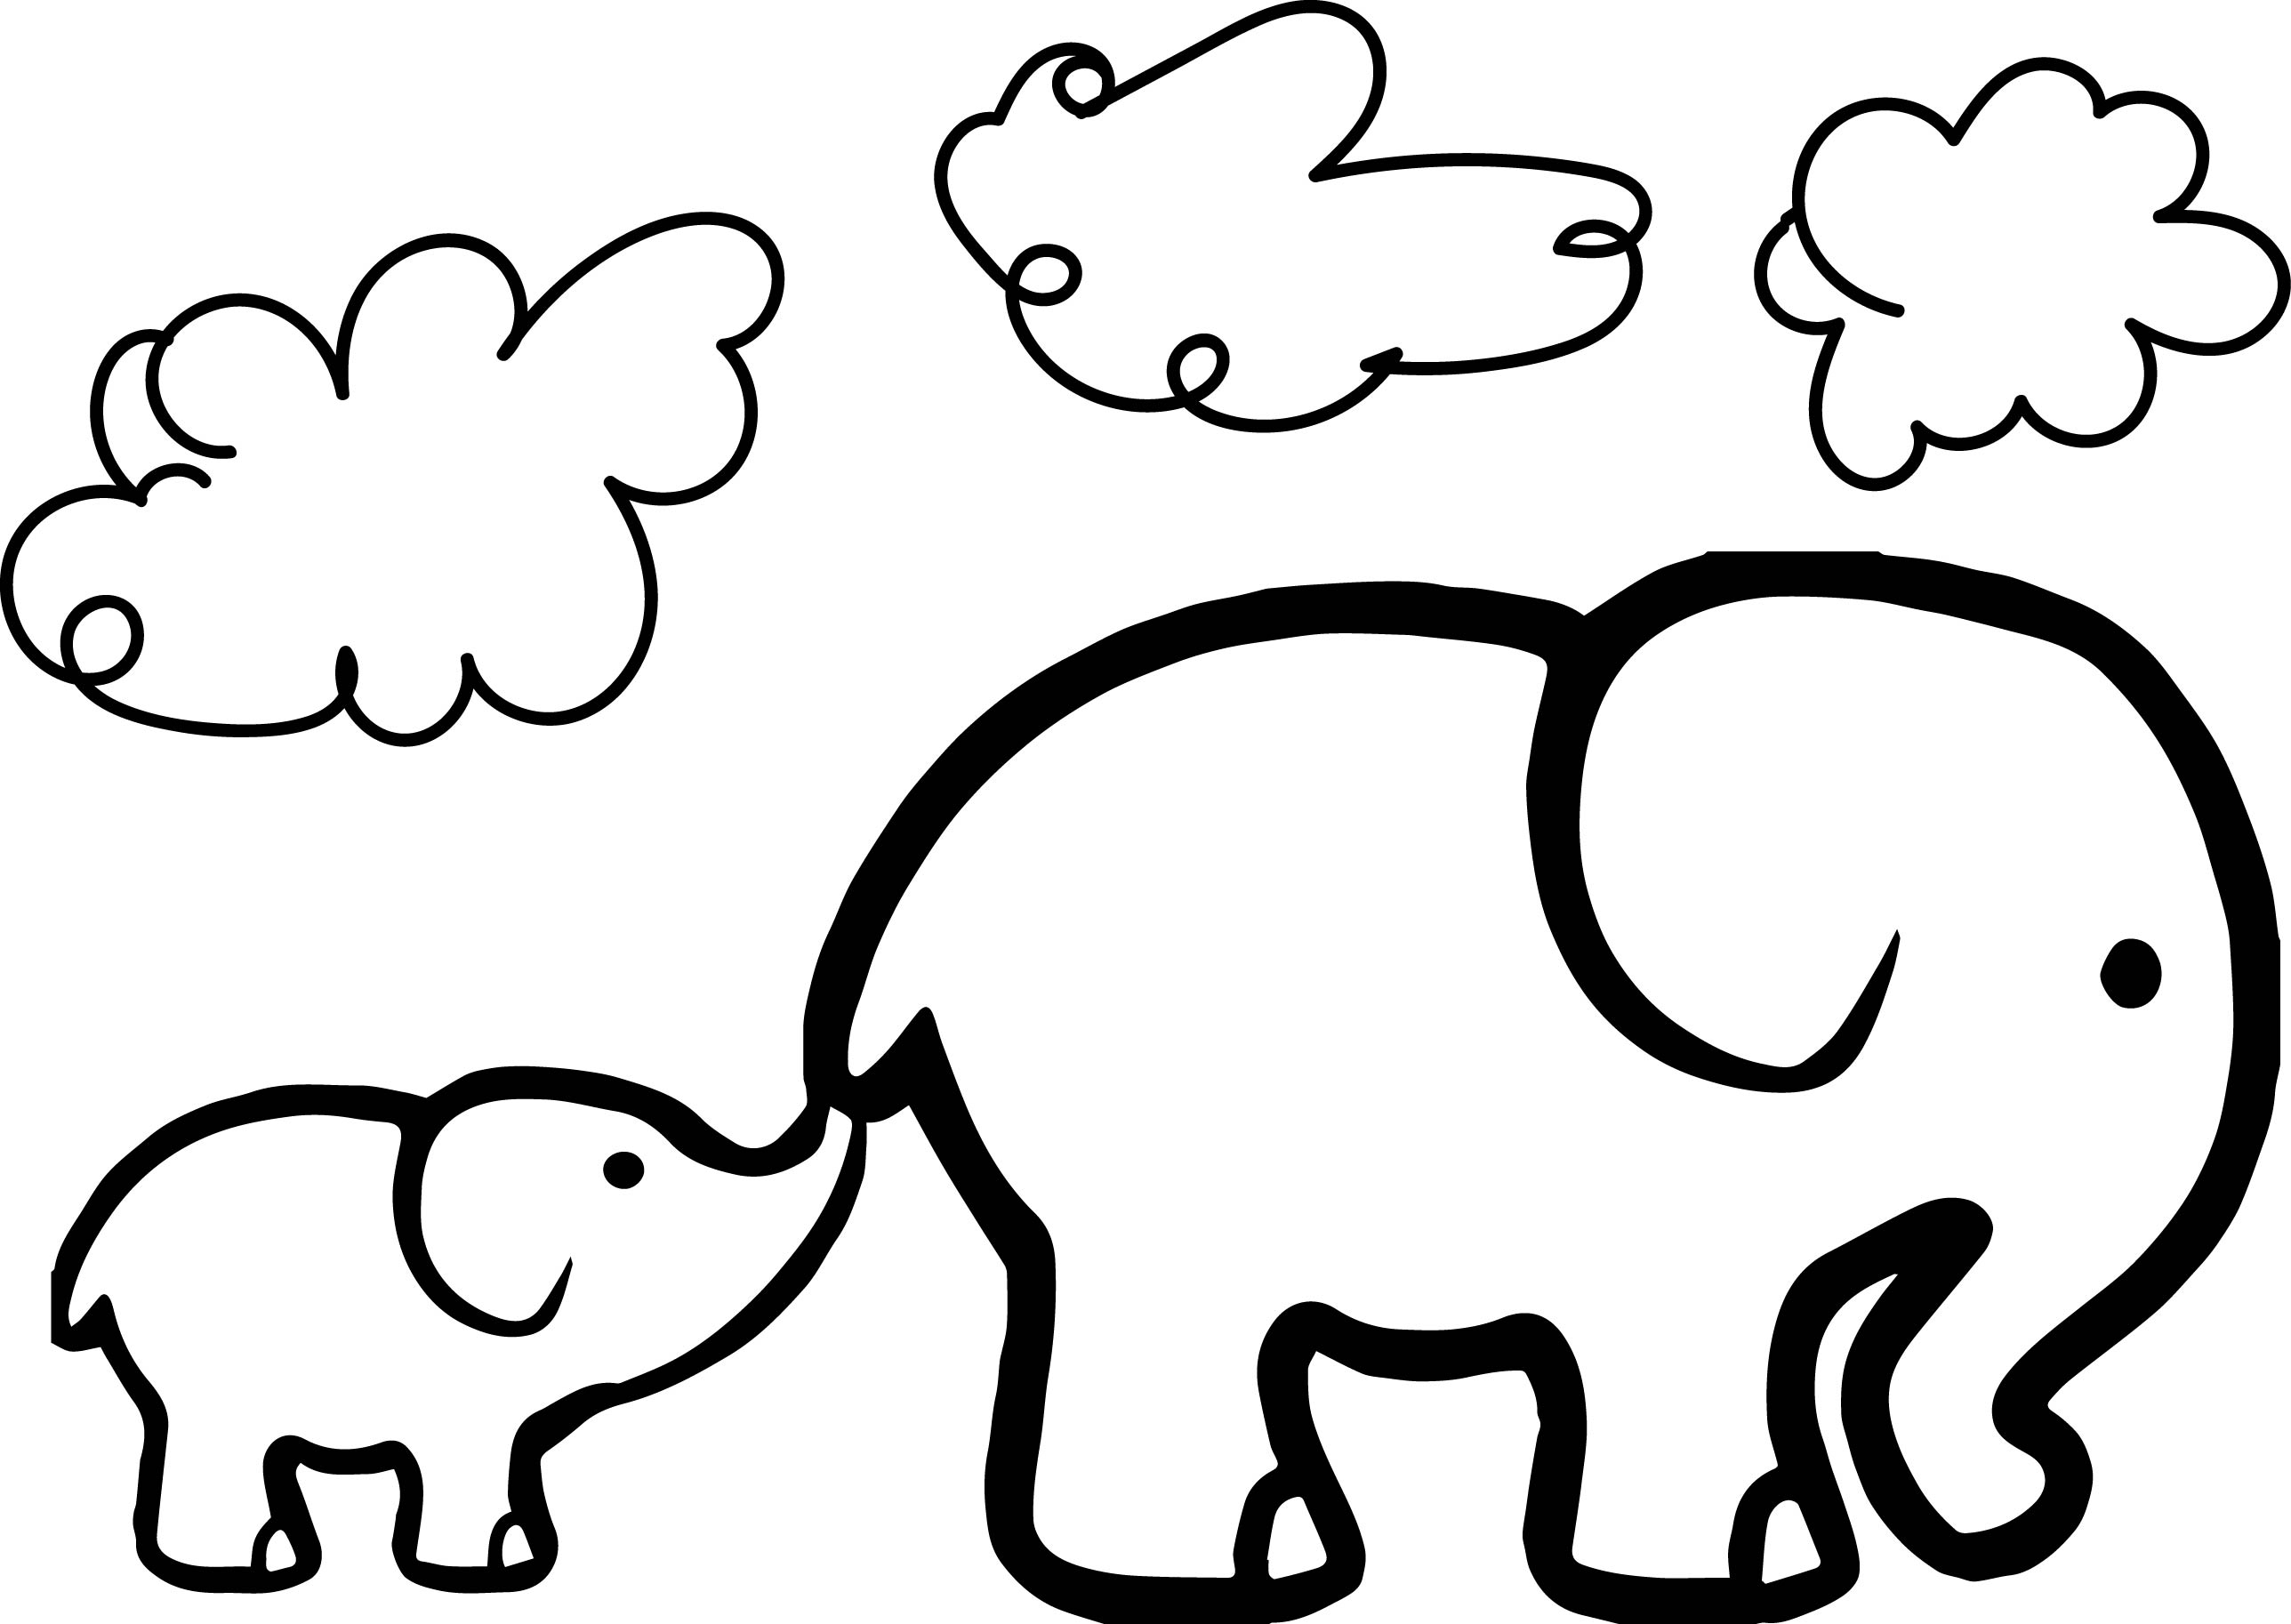 coloring sheets elephant elephant drawing tumblr at getdrawings free download elephant sheets coloring